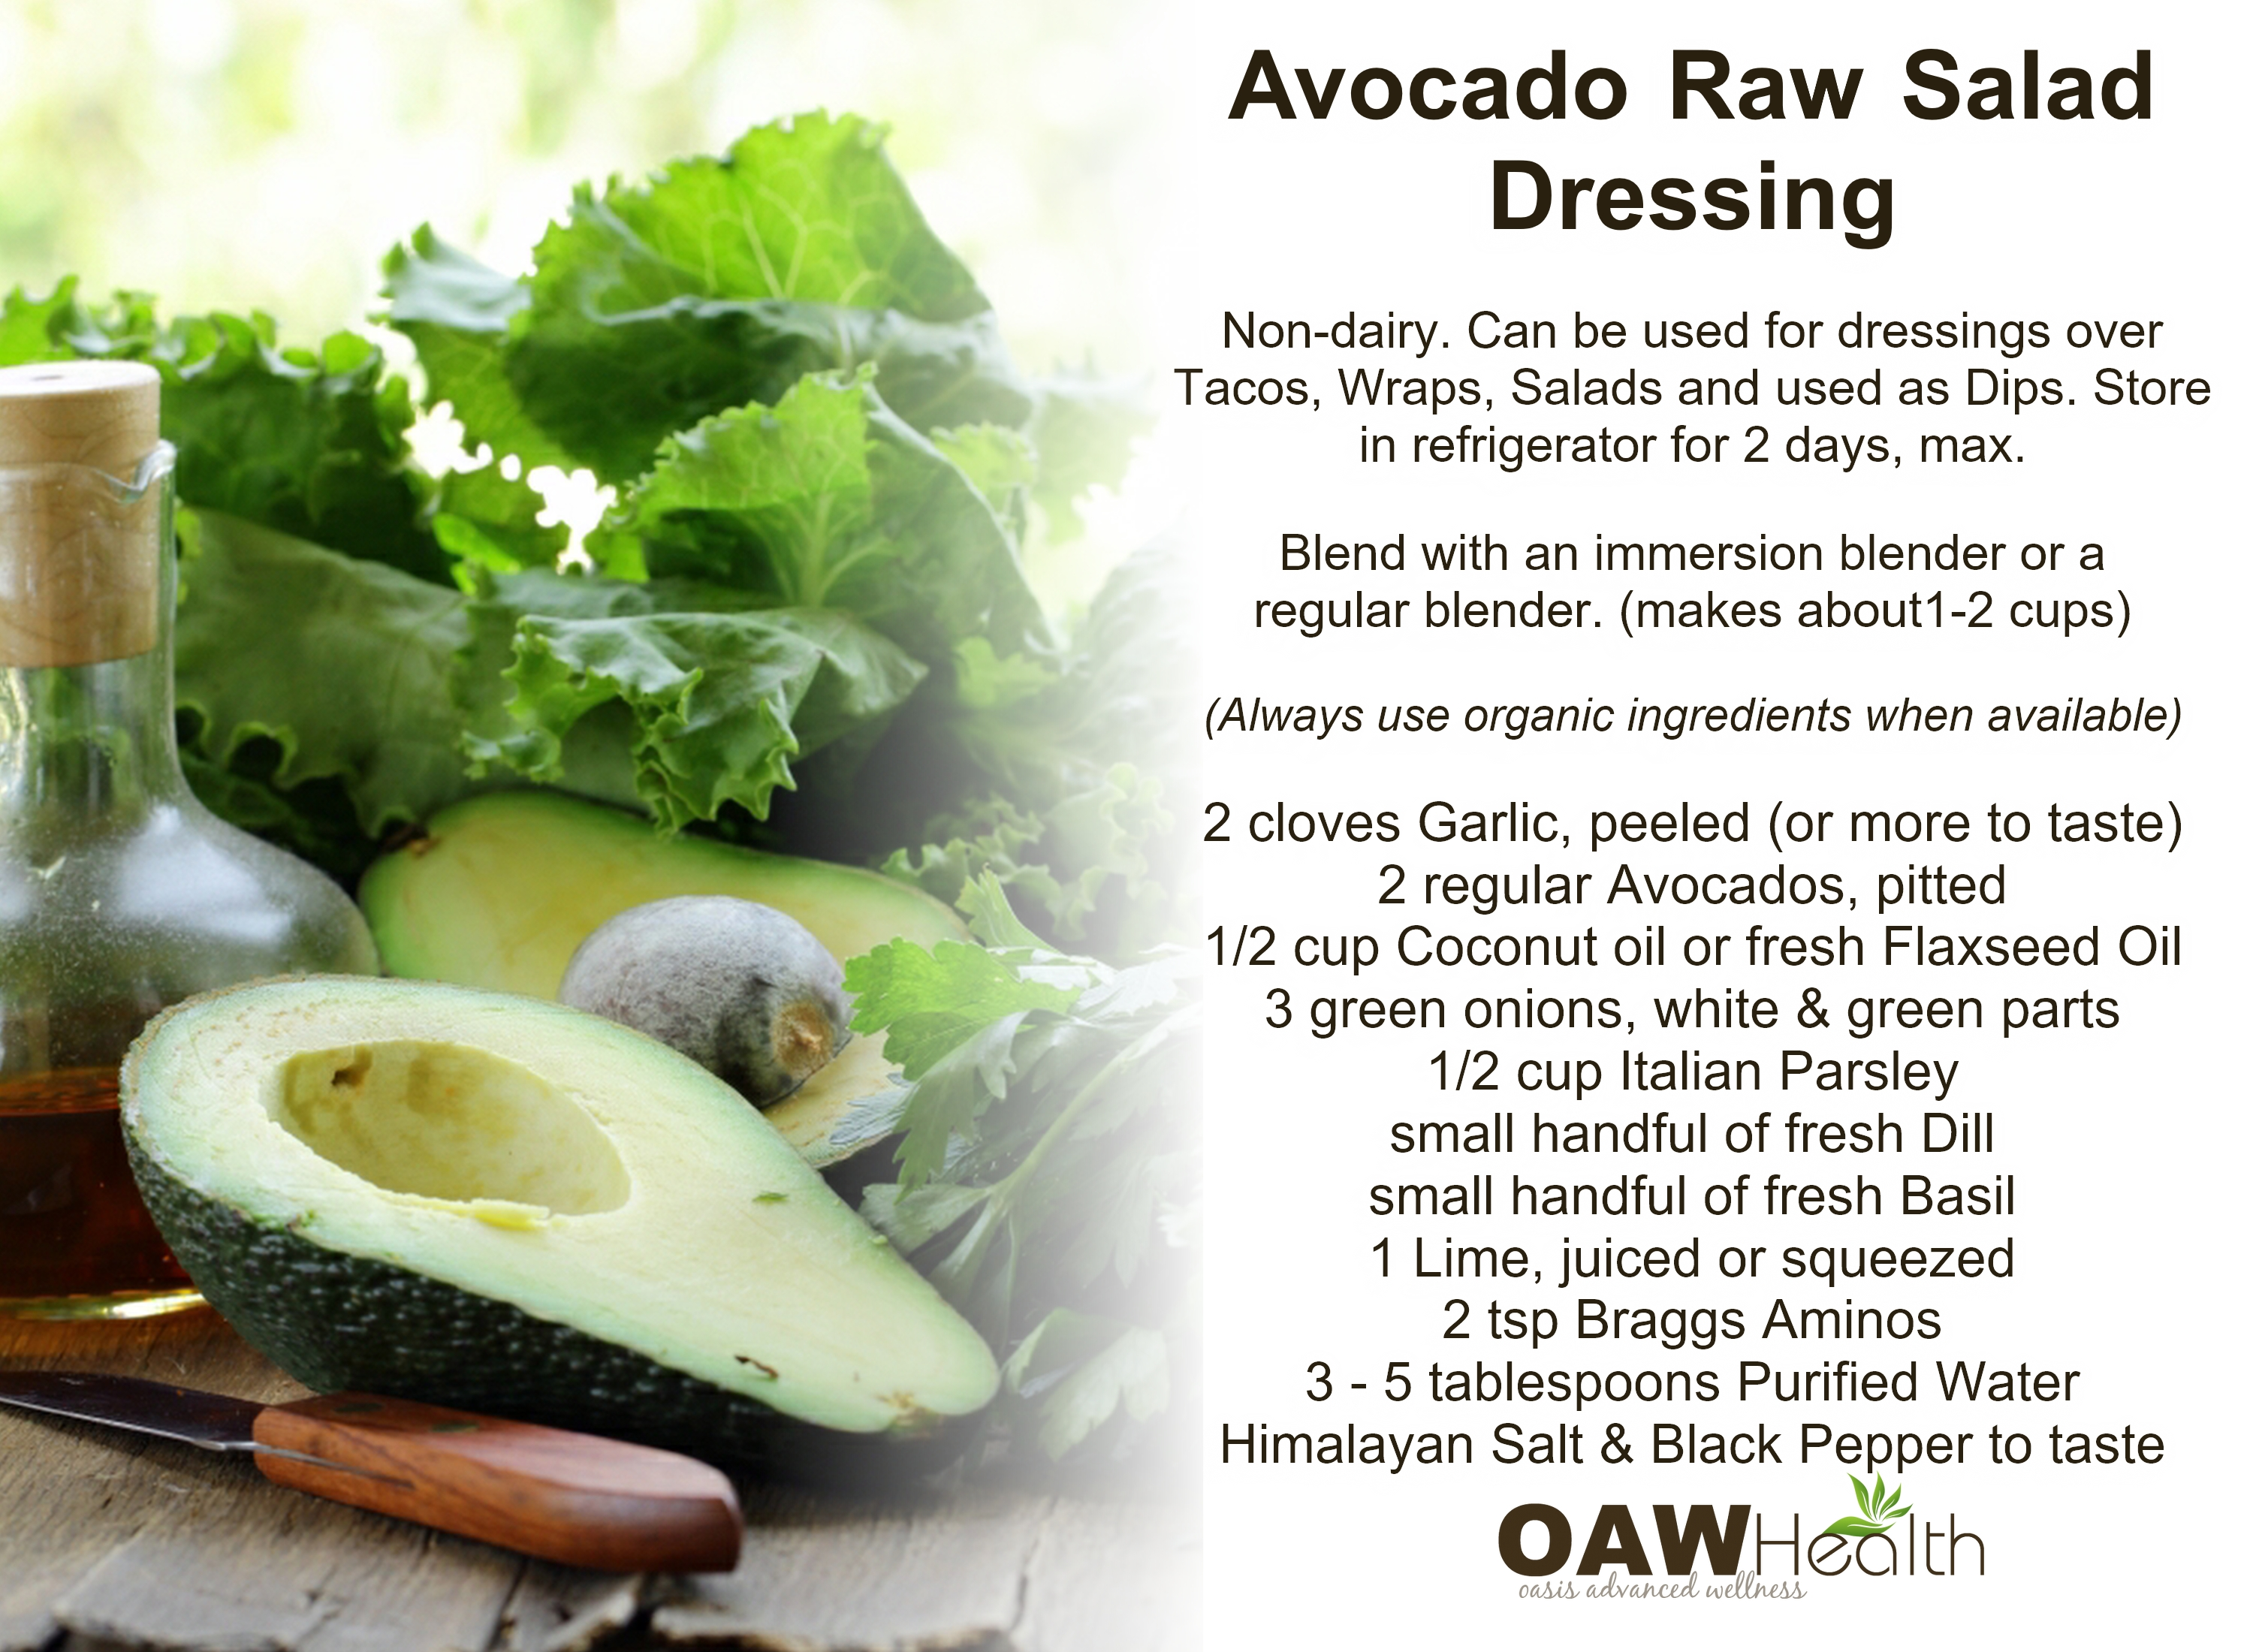 Avocado Raw Salad Dressing Recipe